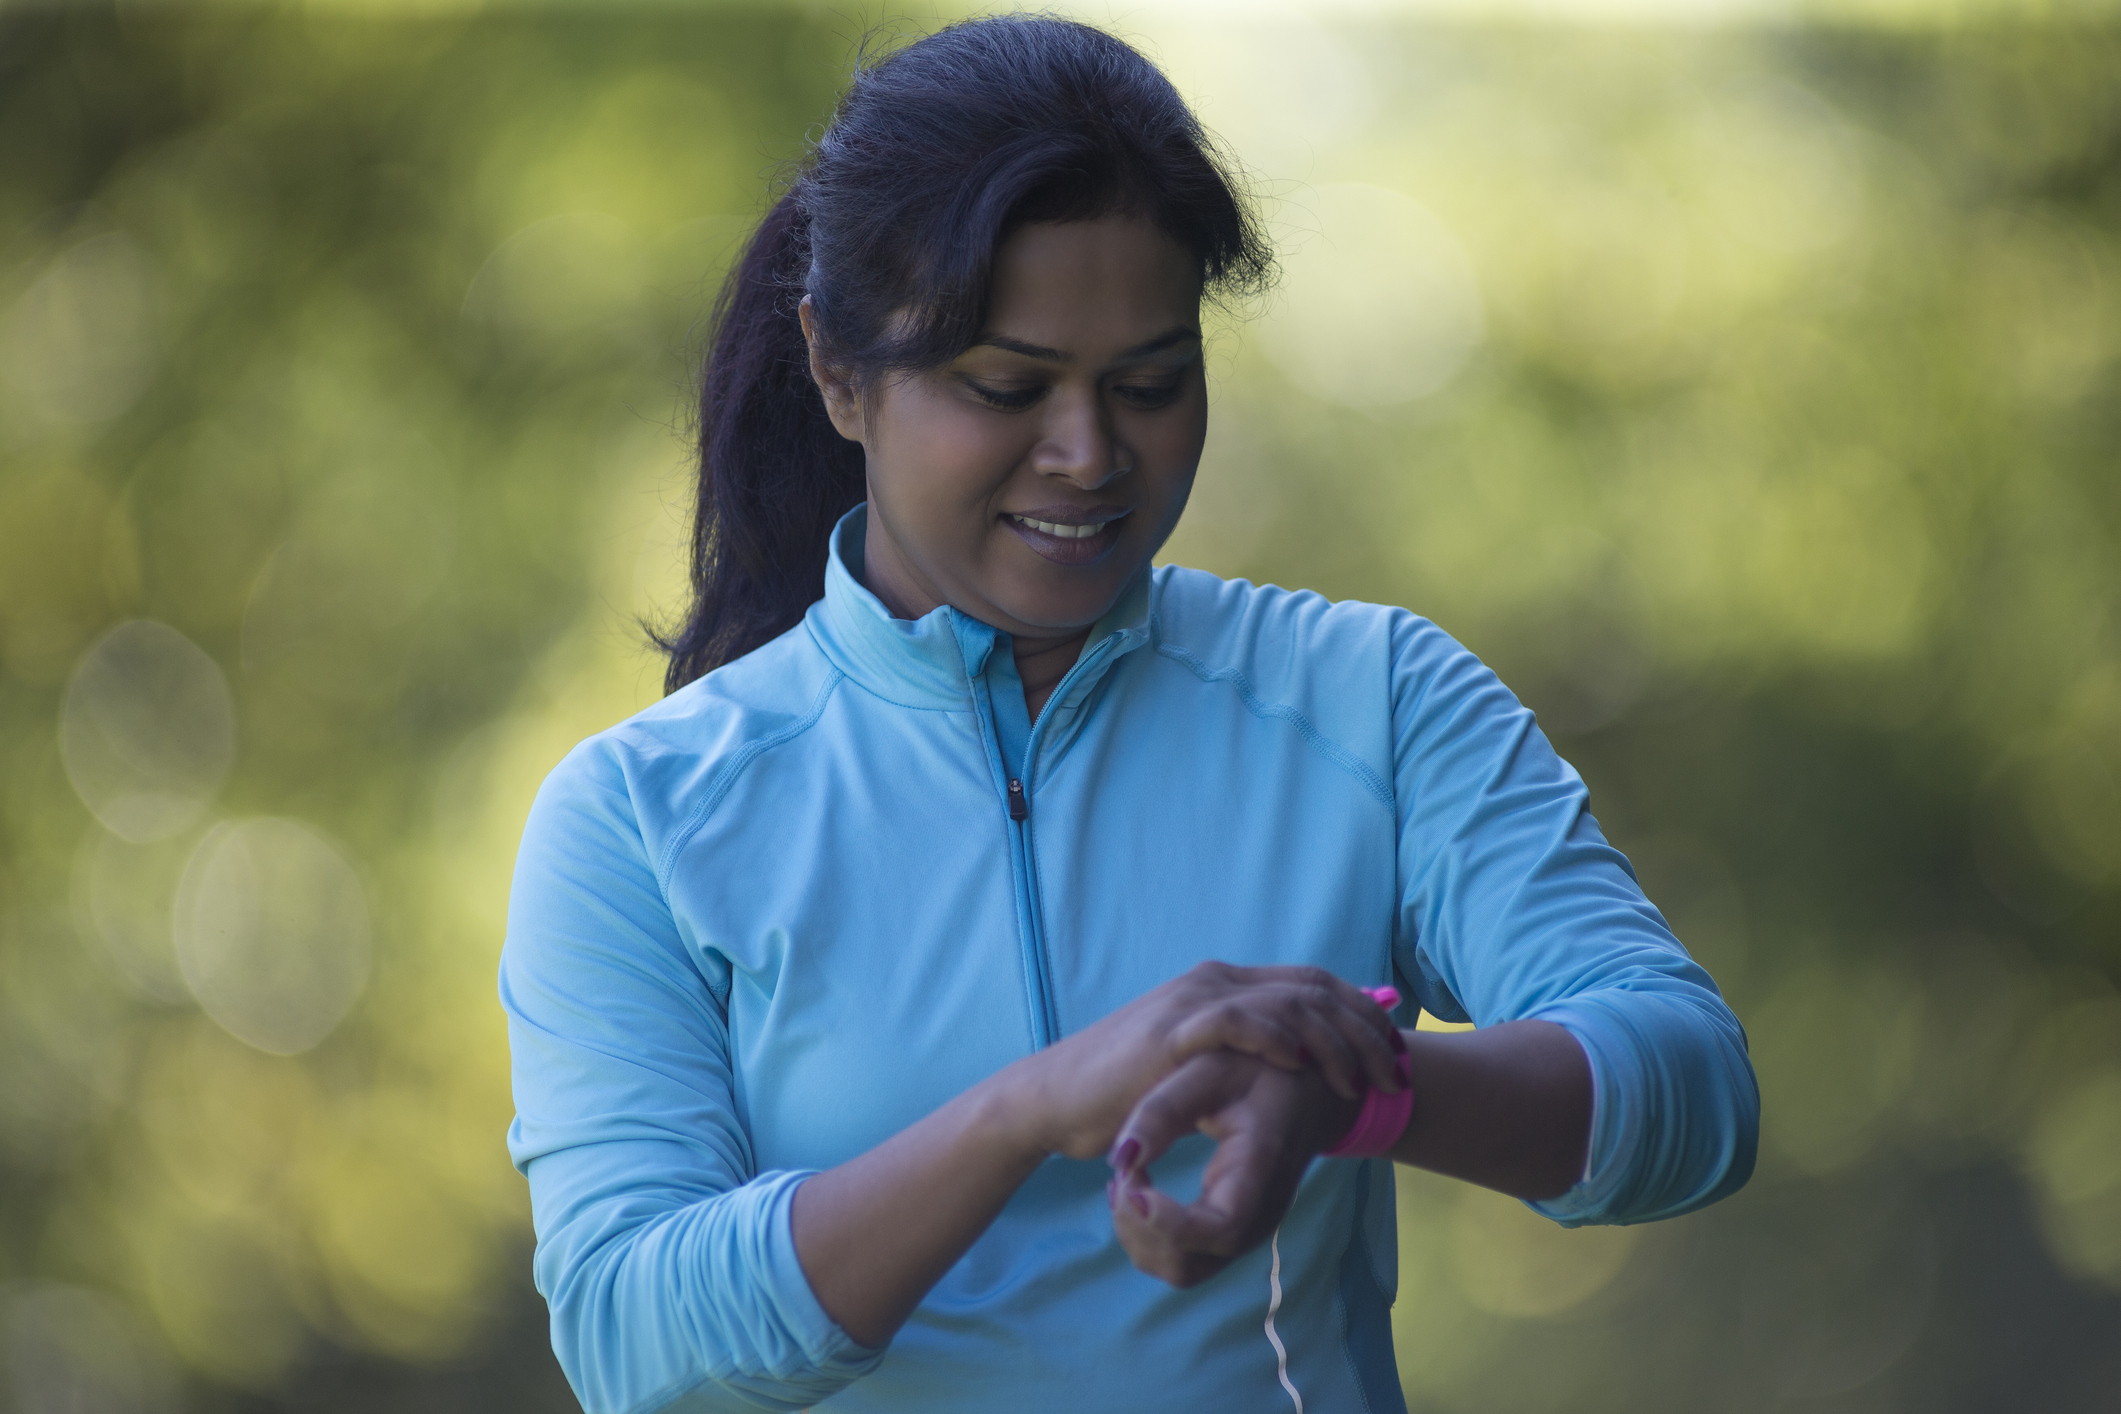 The exercise sweet spot that keeps blood pressure in check